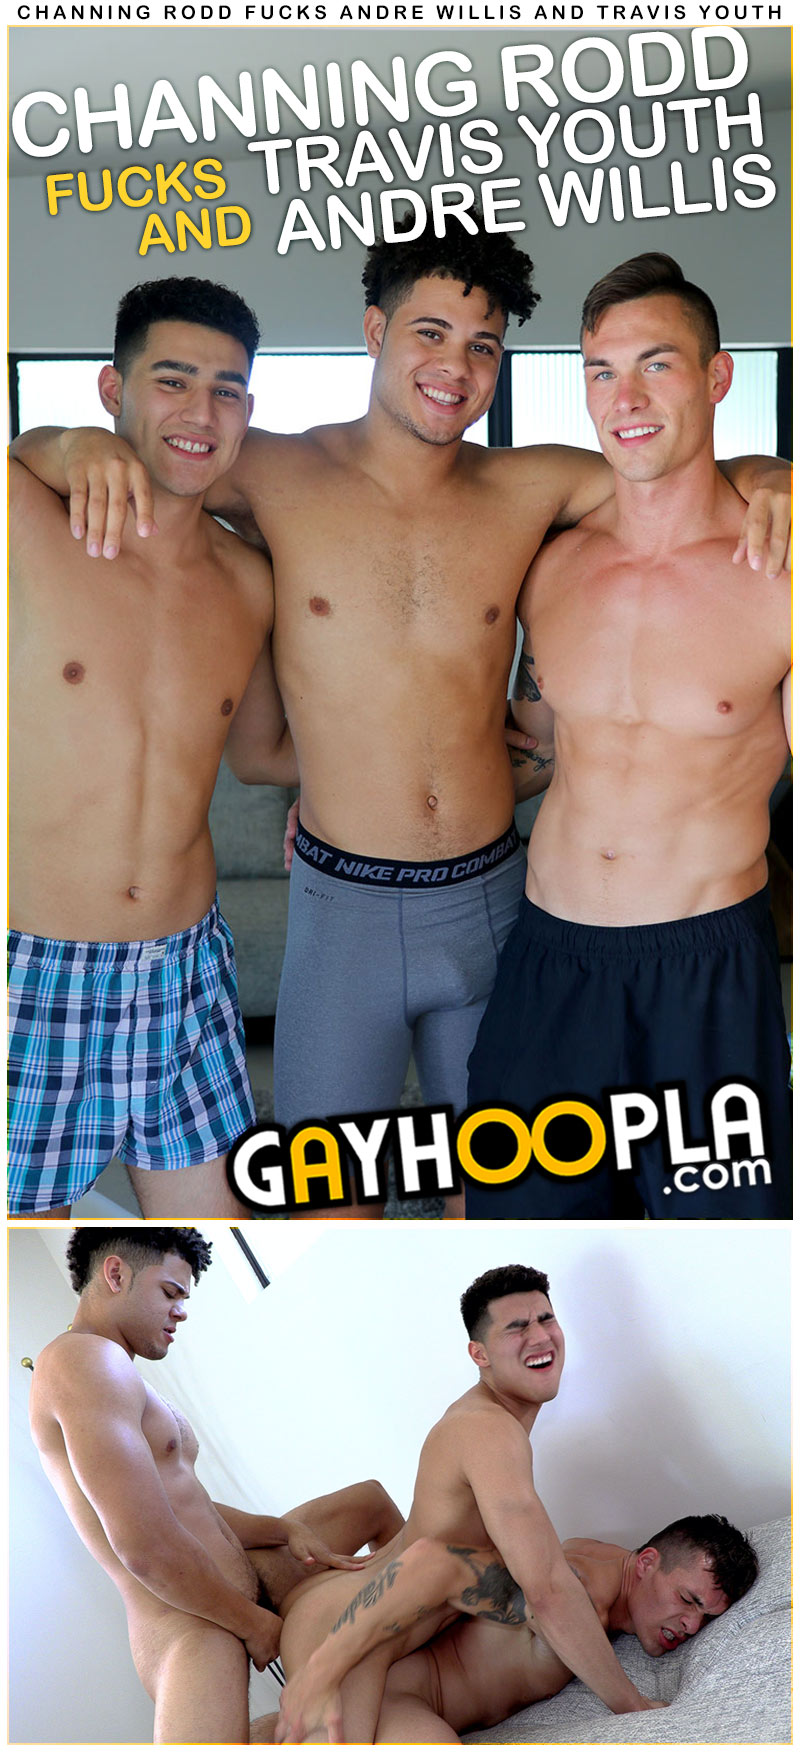 Channing Rodd Fucks Andre Willis and Travis Youth at GayHoopla